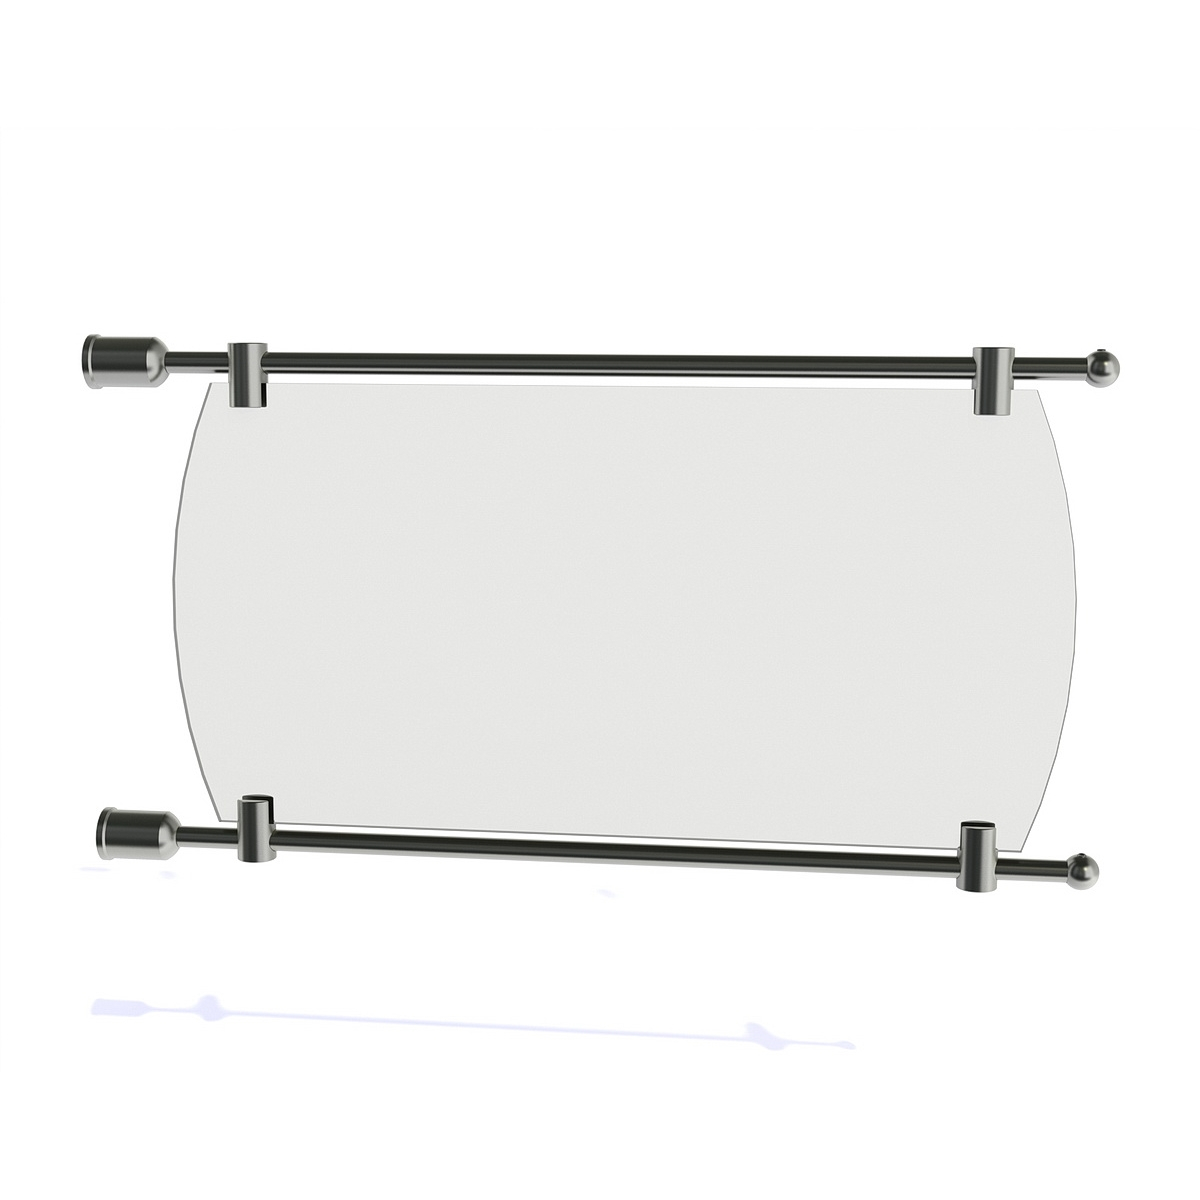 3/8'' Diameter Rod Projecting Sign, Aluminum Clear Anodized, 17 13/16'' including the wall mounts. Material thickness up to 5/16''